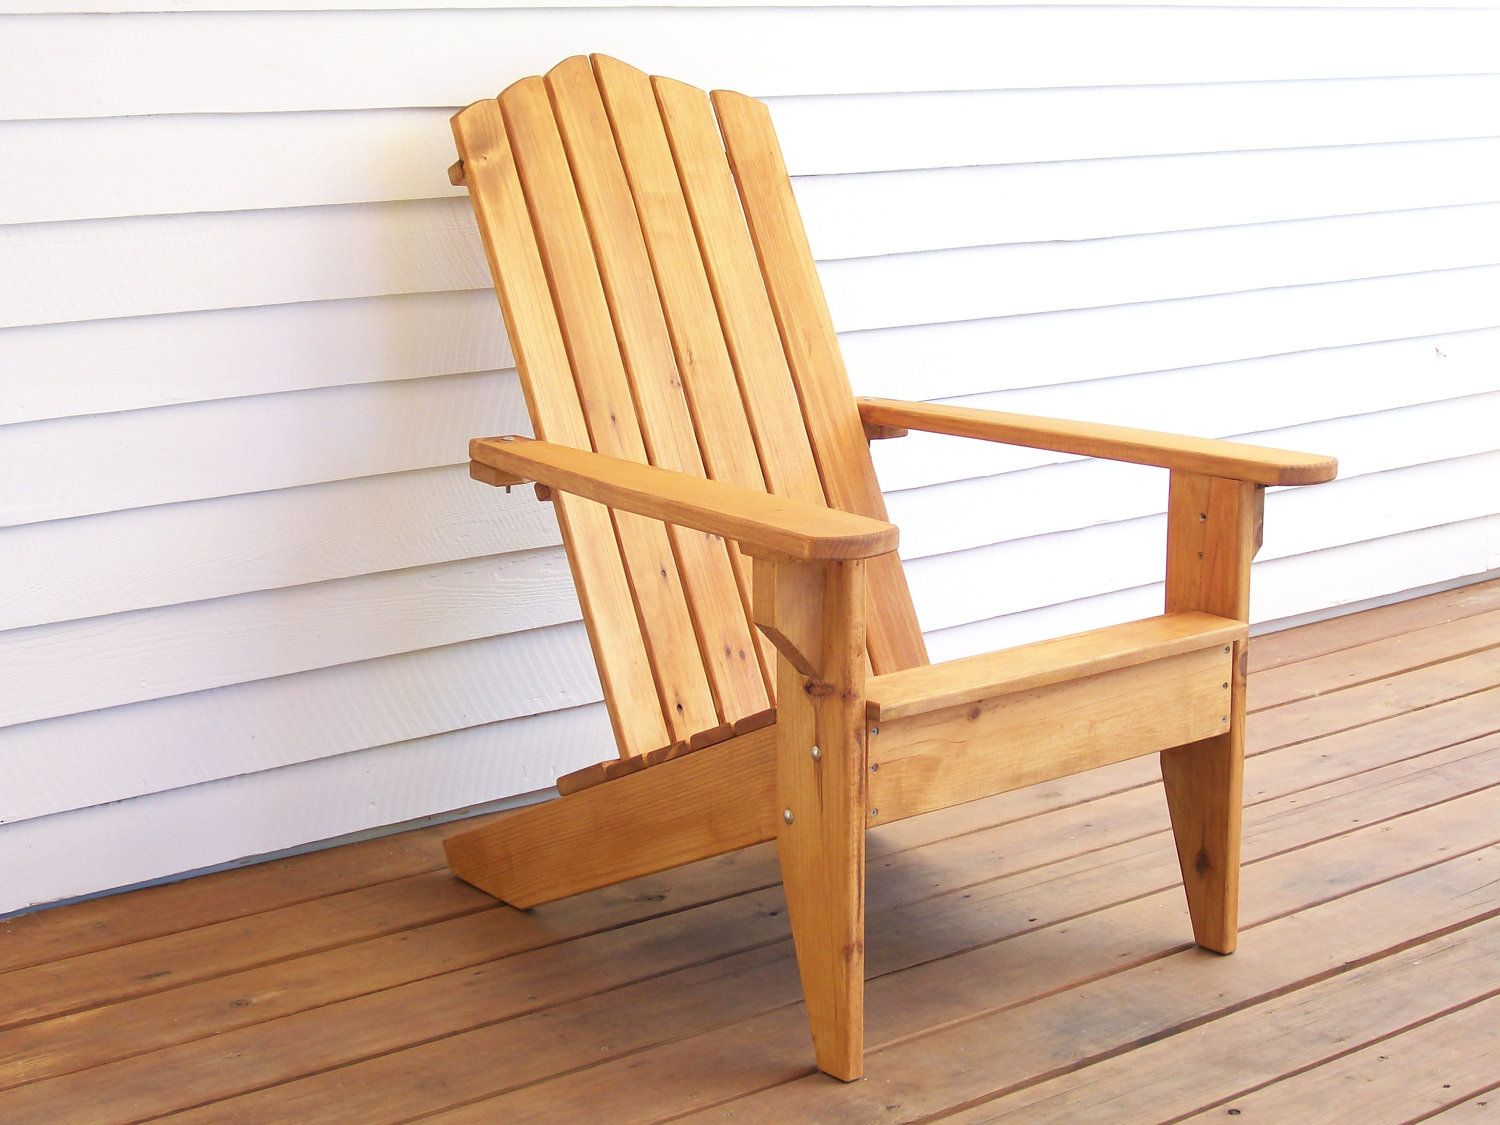 Adirondack Wood Chair Adirondack Furniture Outdoor Wood Furniture Wood Dec